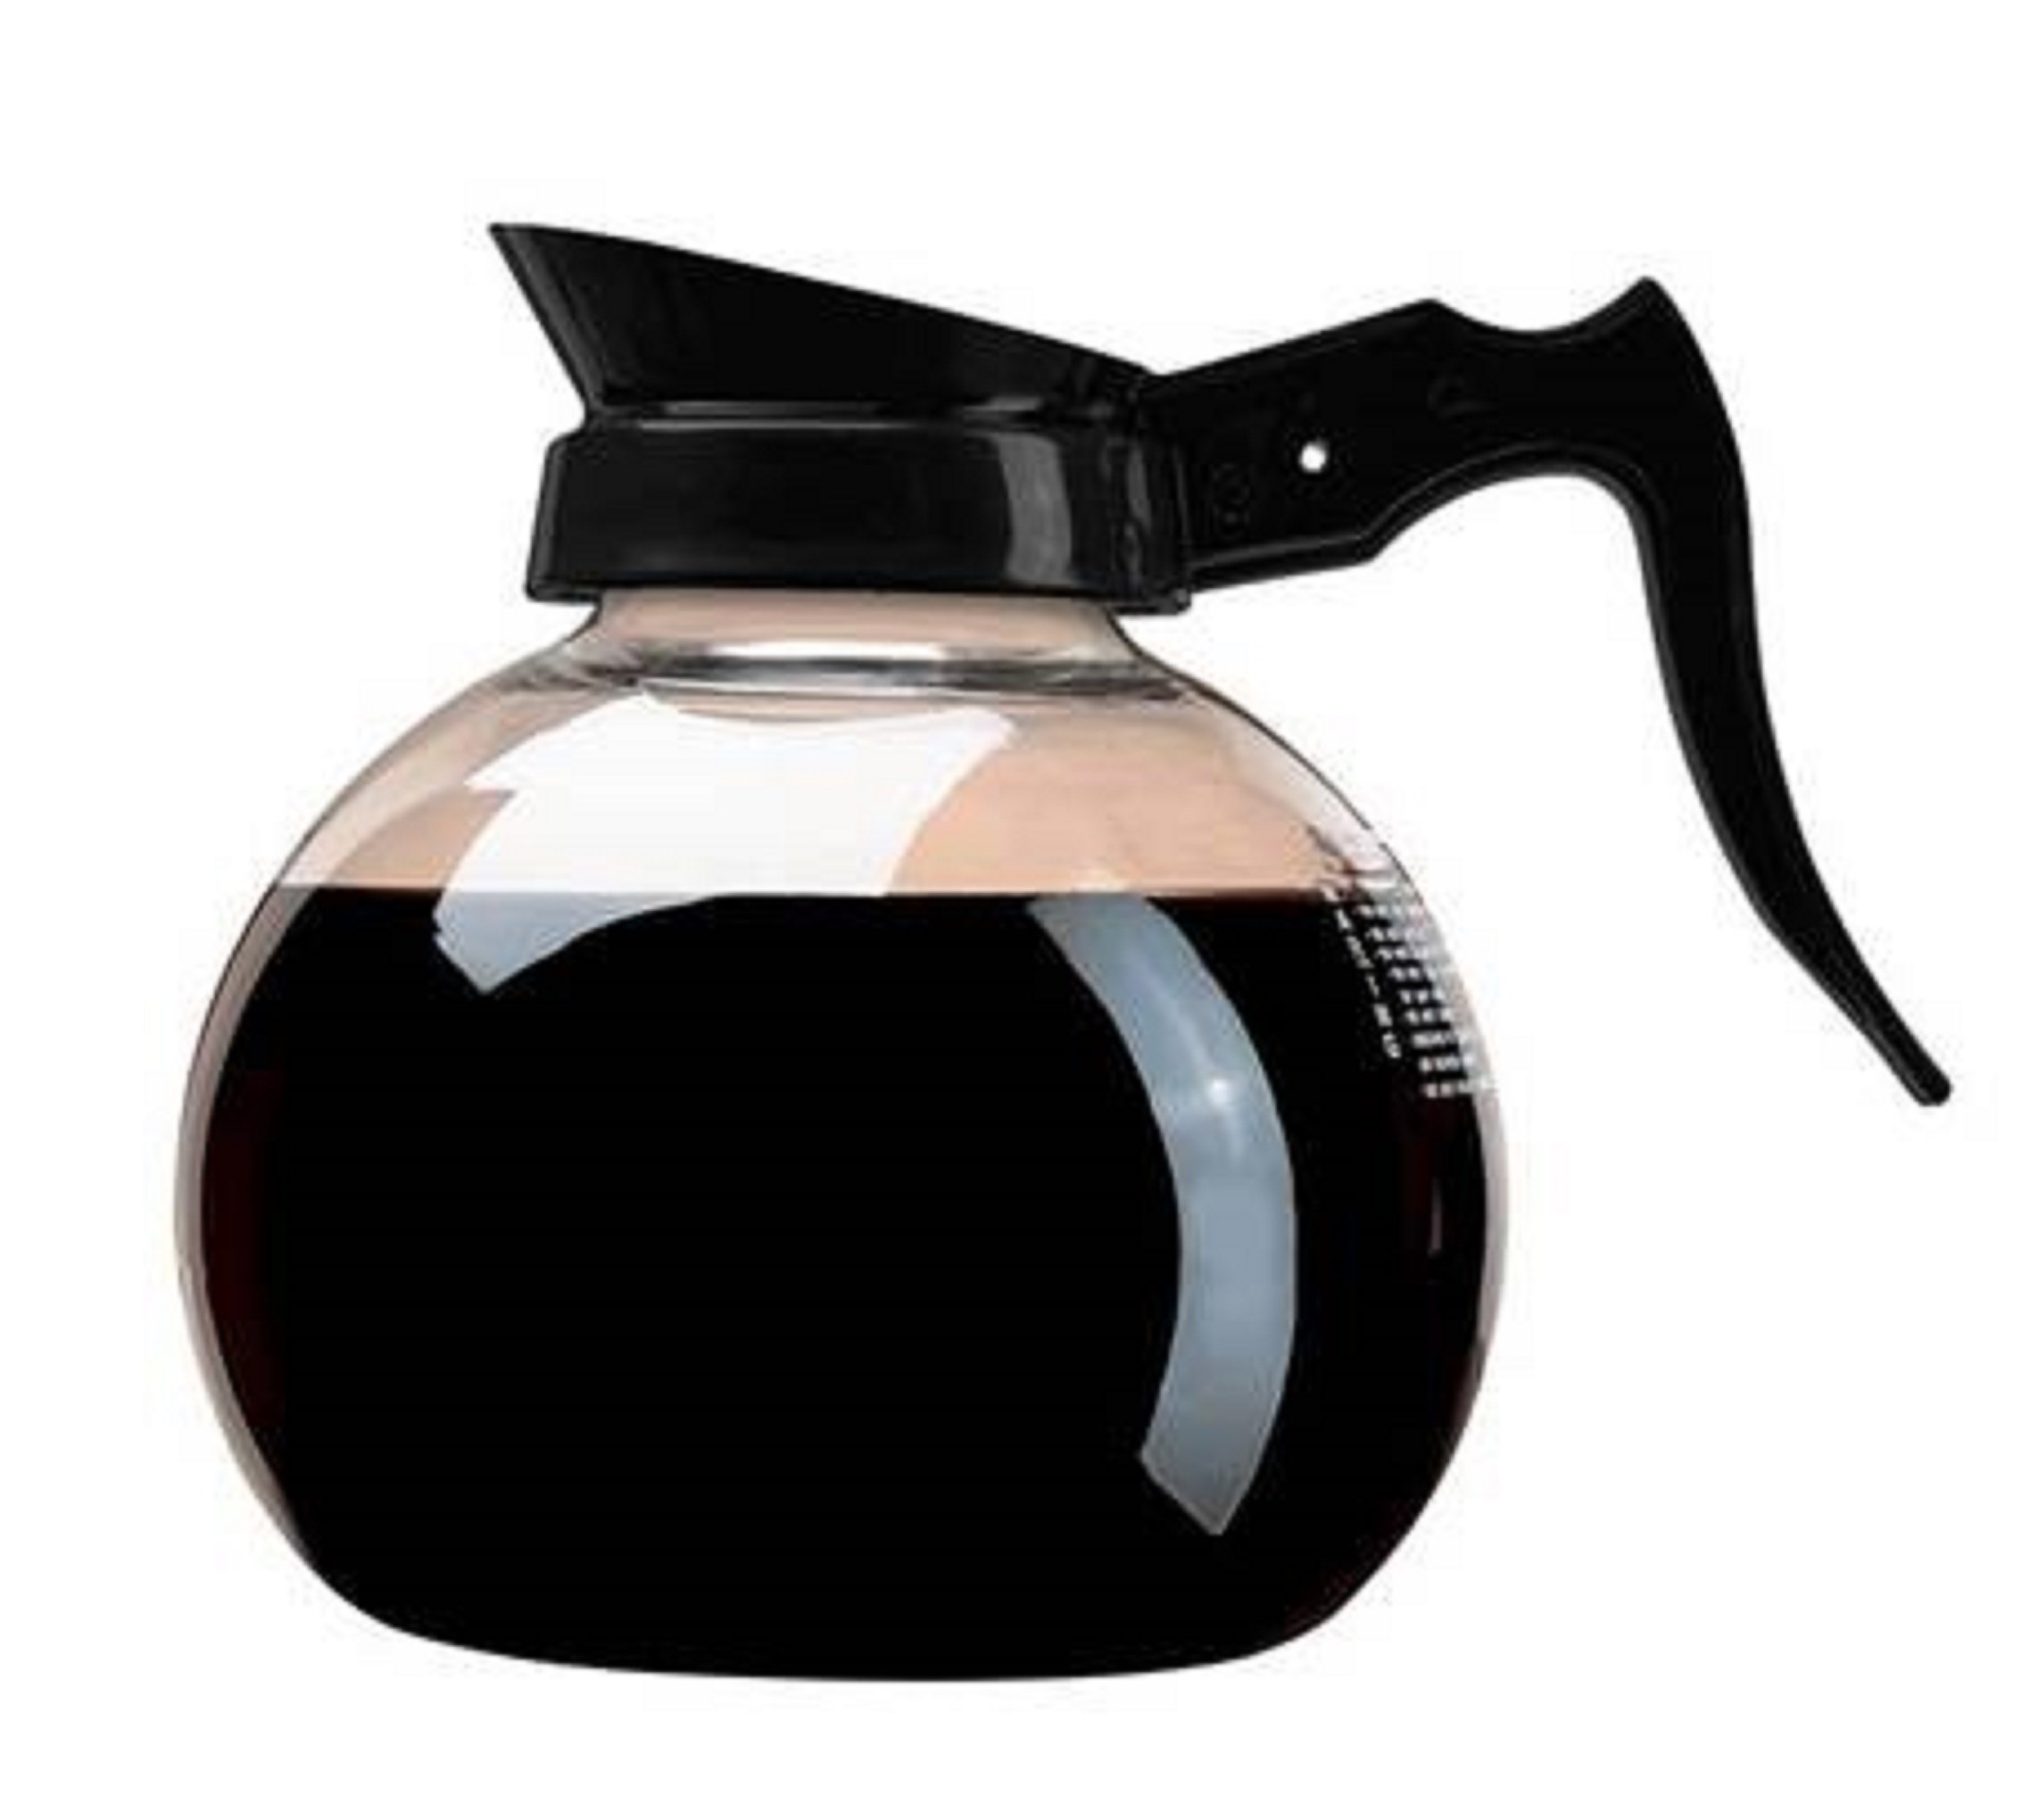 Wilbur Curtis Commercial Coffee Decanter - Impact Resistant - Black Handle & White Imprint Logo - 64 Ounce REGULAR Coffee Decanter - (Each)